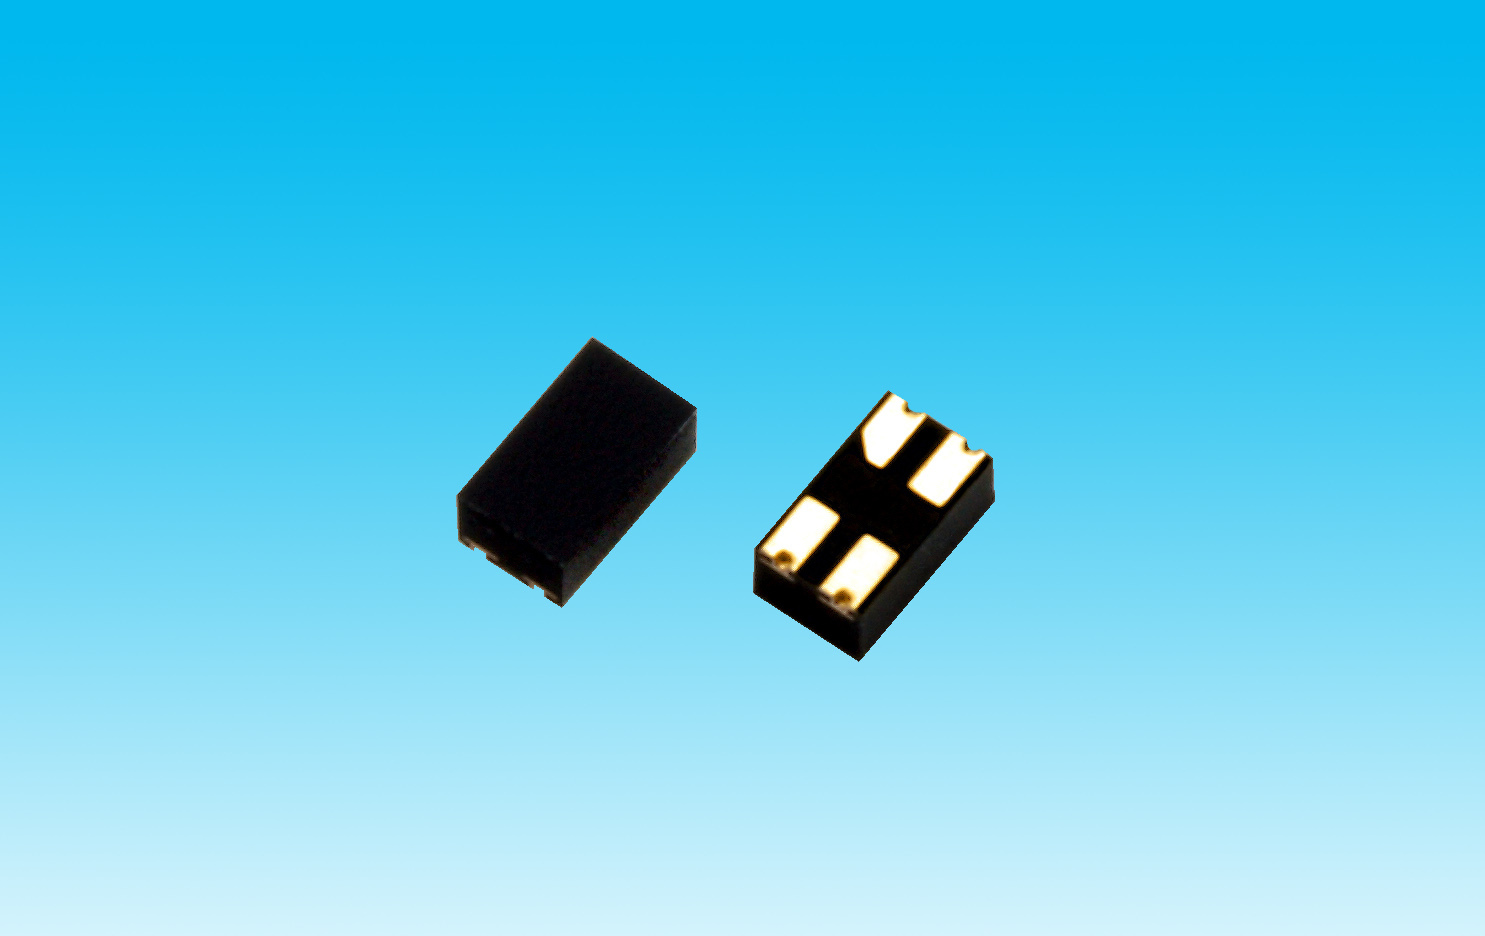 Toshiba: VSON (Very Small Outline Non-leaded) Package Photorelays (Photo: Business Wire)